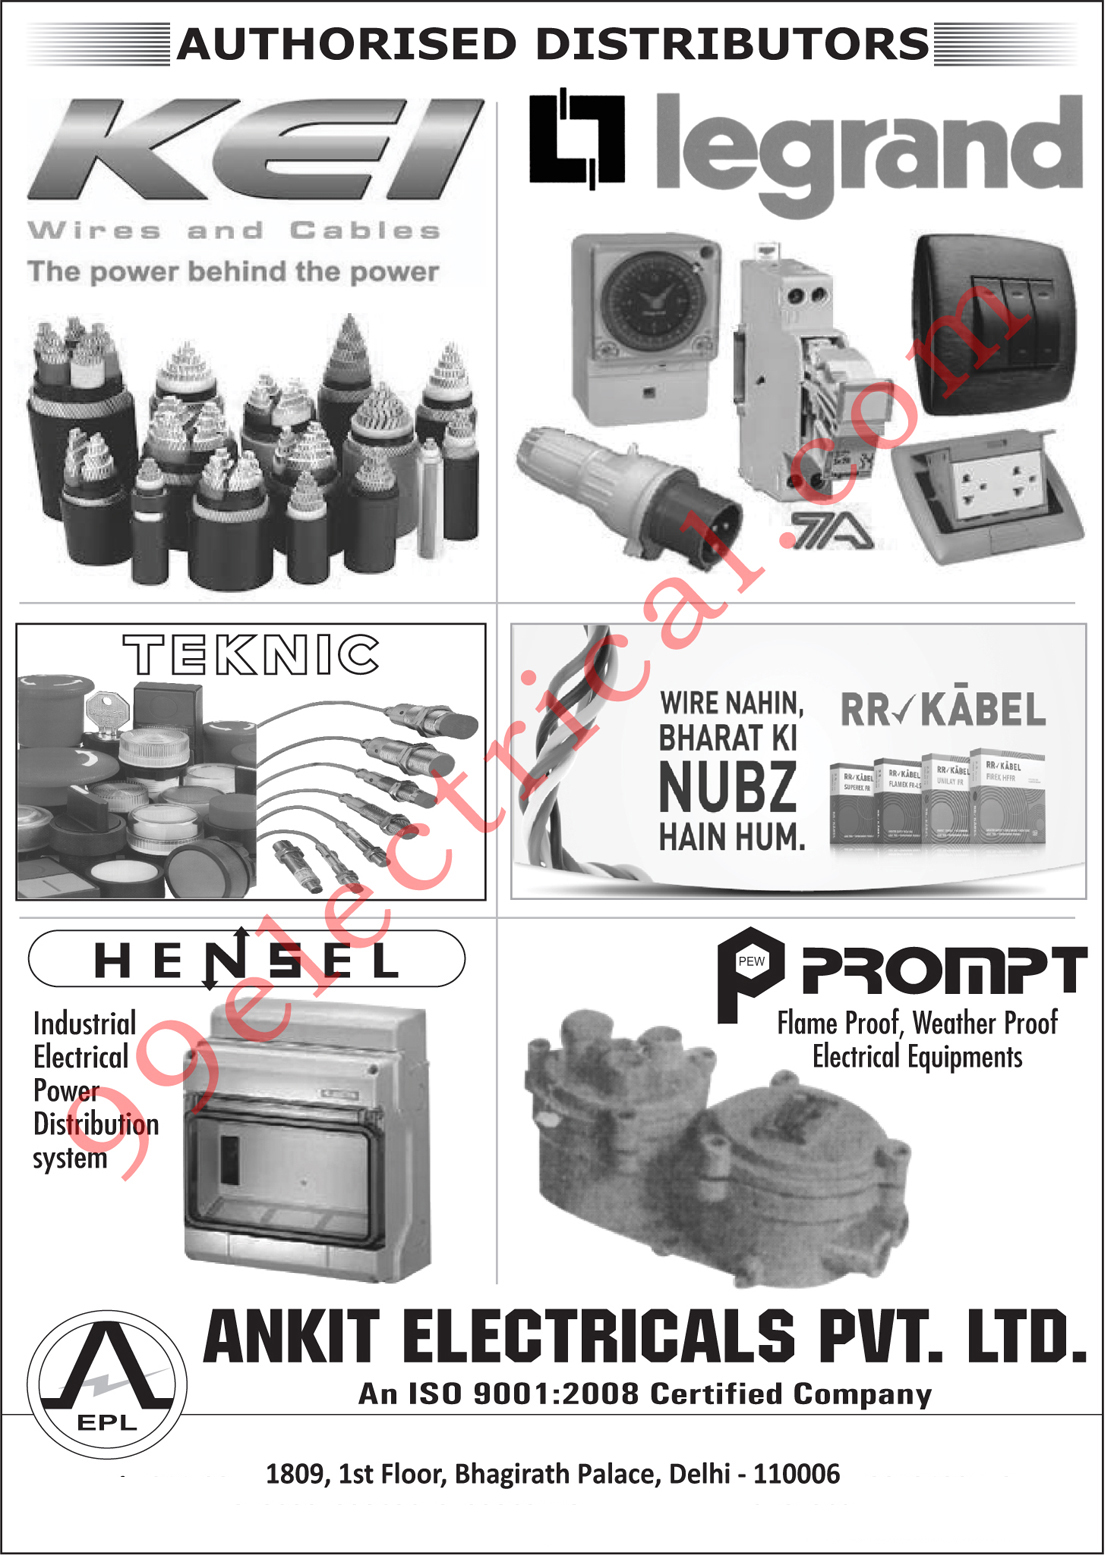 Electrical Wires, Electrical Cables, Industrial Power Distribution System, Electrical Power Distribution System, Flame Proof Electrical Equipments, Weather Proof Electrical Equipments,Electrical Panels, Electrical Products, Electrical Parts, Cables, Flame Proof Element Equipment, Power Distribution System, Switches, Wires, MCB, Relay, Lugs, Cable Lugs, Contactor, Socket Connectors, Connectors, Plug Connectors, Junction Boxes, Control Device, Signalling Devices, Earthing Material, Electrical Enclosures, Fuse, Household Switches, Switches